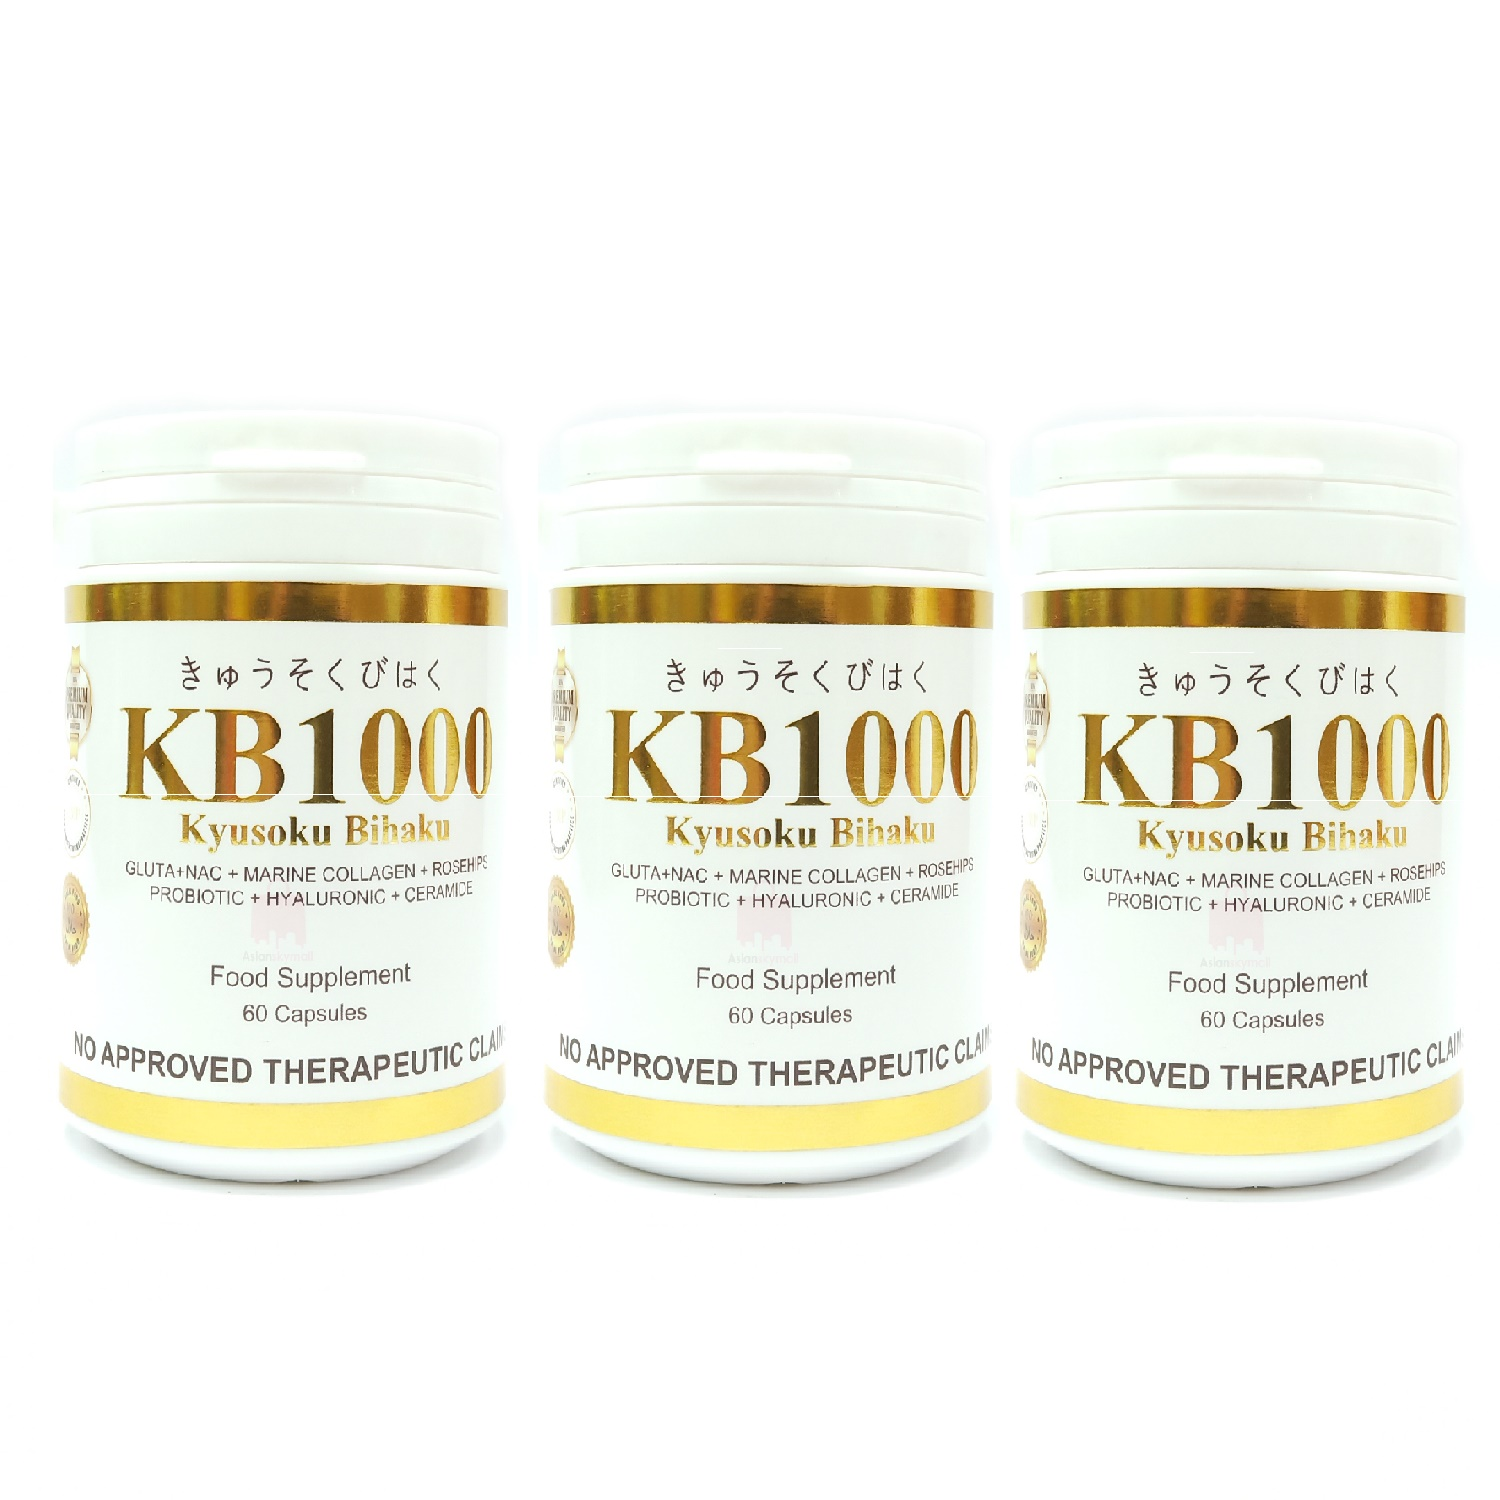 KB 1000 3 Months Supply